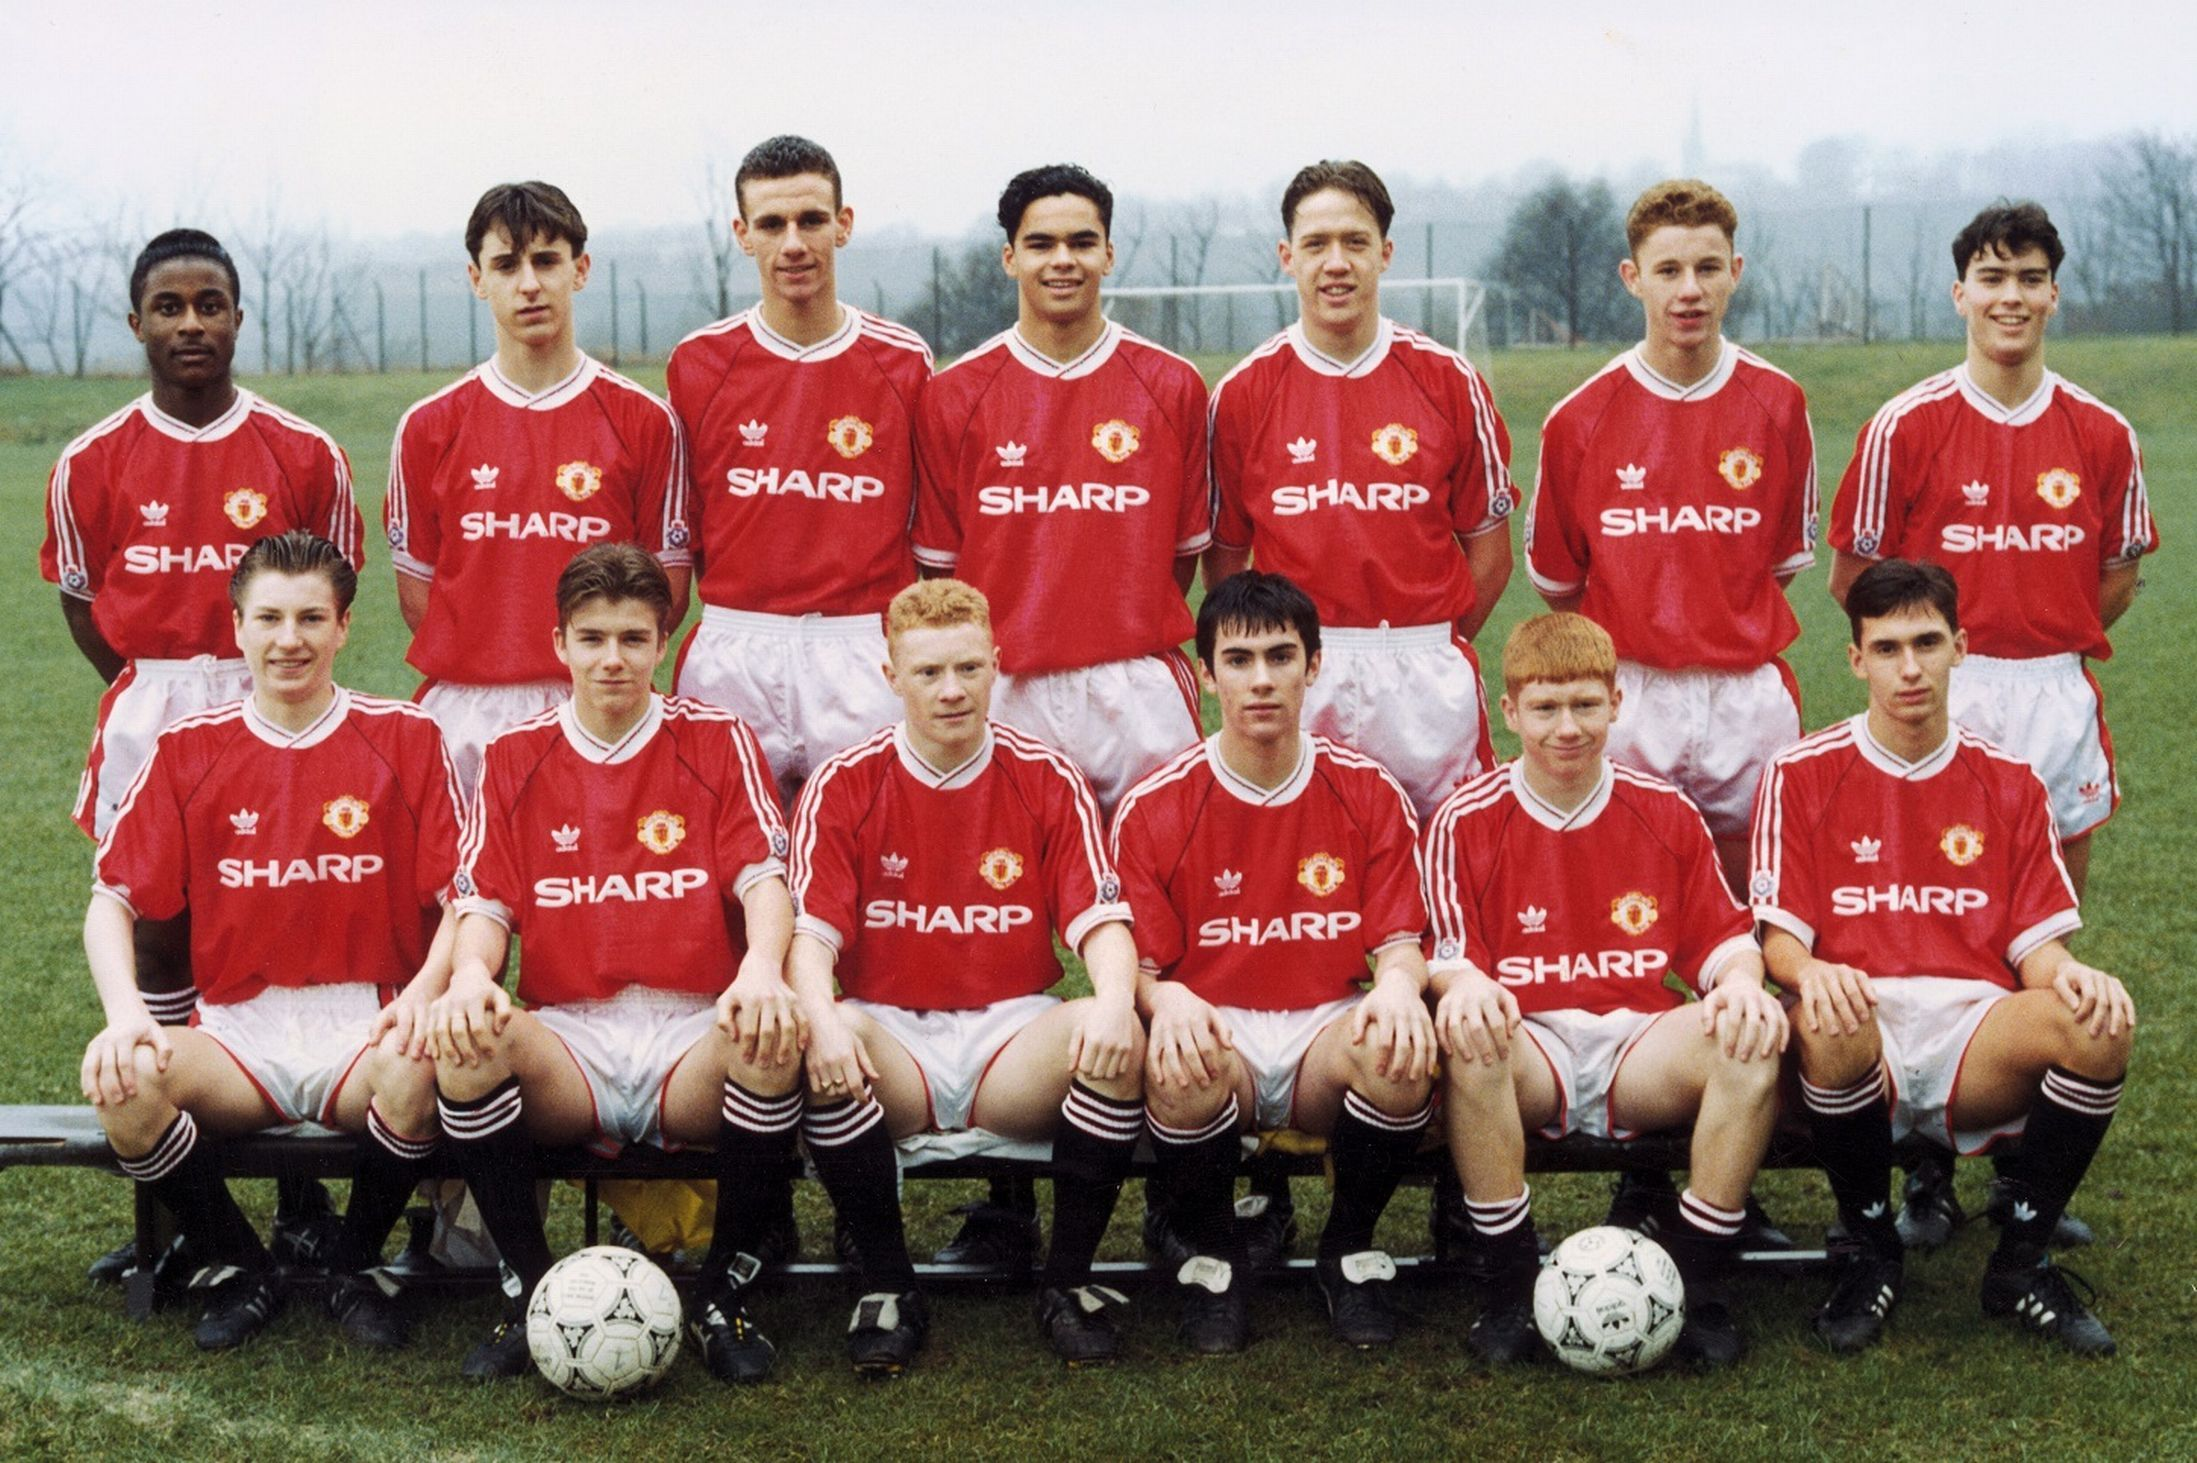 3ce4d93da Manchester United's youth team in 1992. back row left to right: Raphael  Burke, Gary Neville, Simon Davies, John O' Kane, Andy Noone, Nicky Butt and  Ben ...